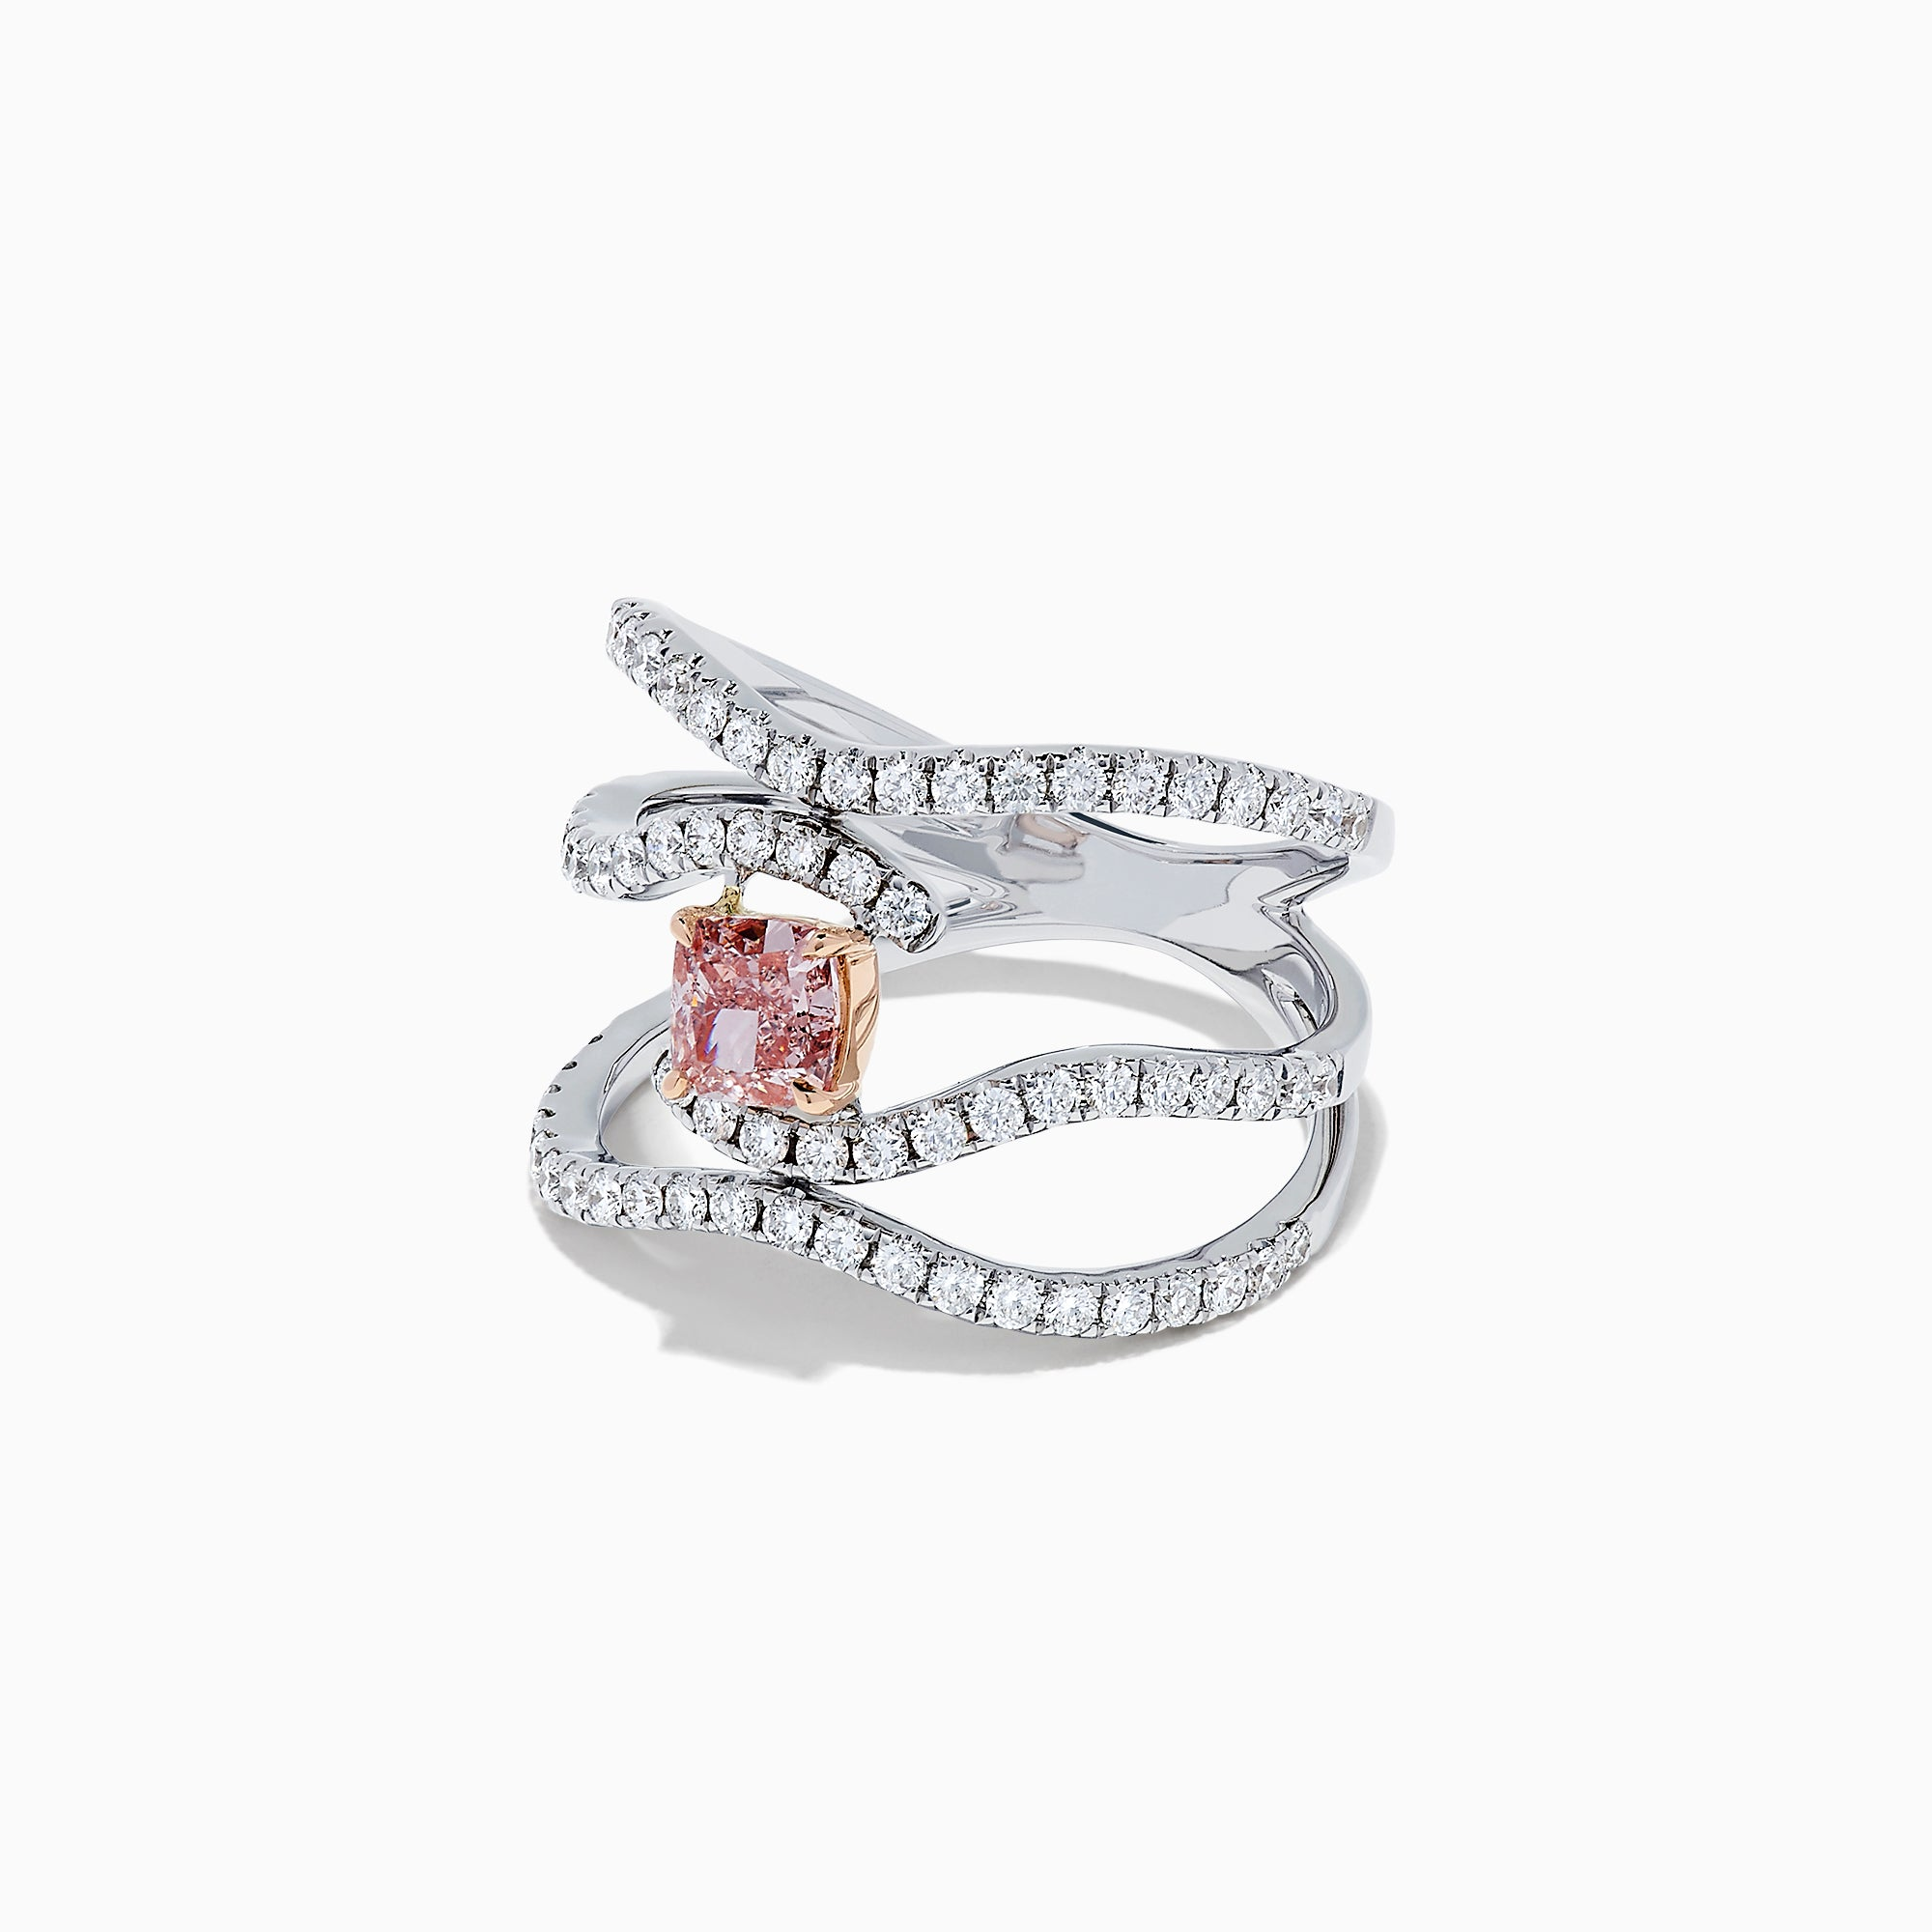 18K Gold White and GIA Certified Pinkish-Brown Diamond Ring, 1.29 TCW